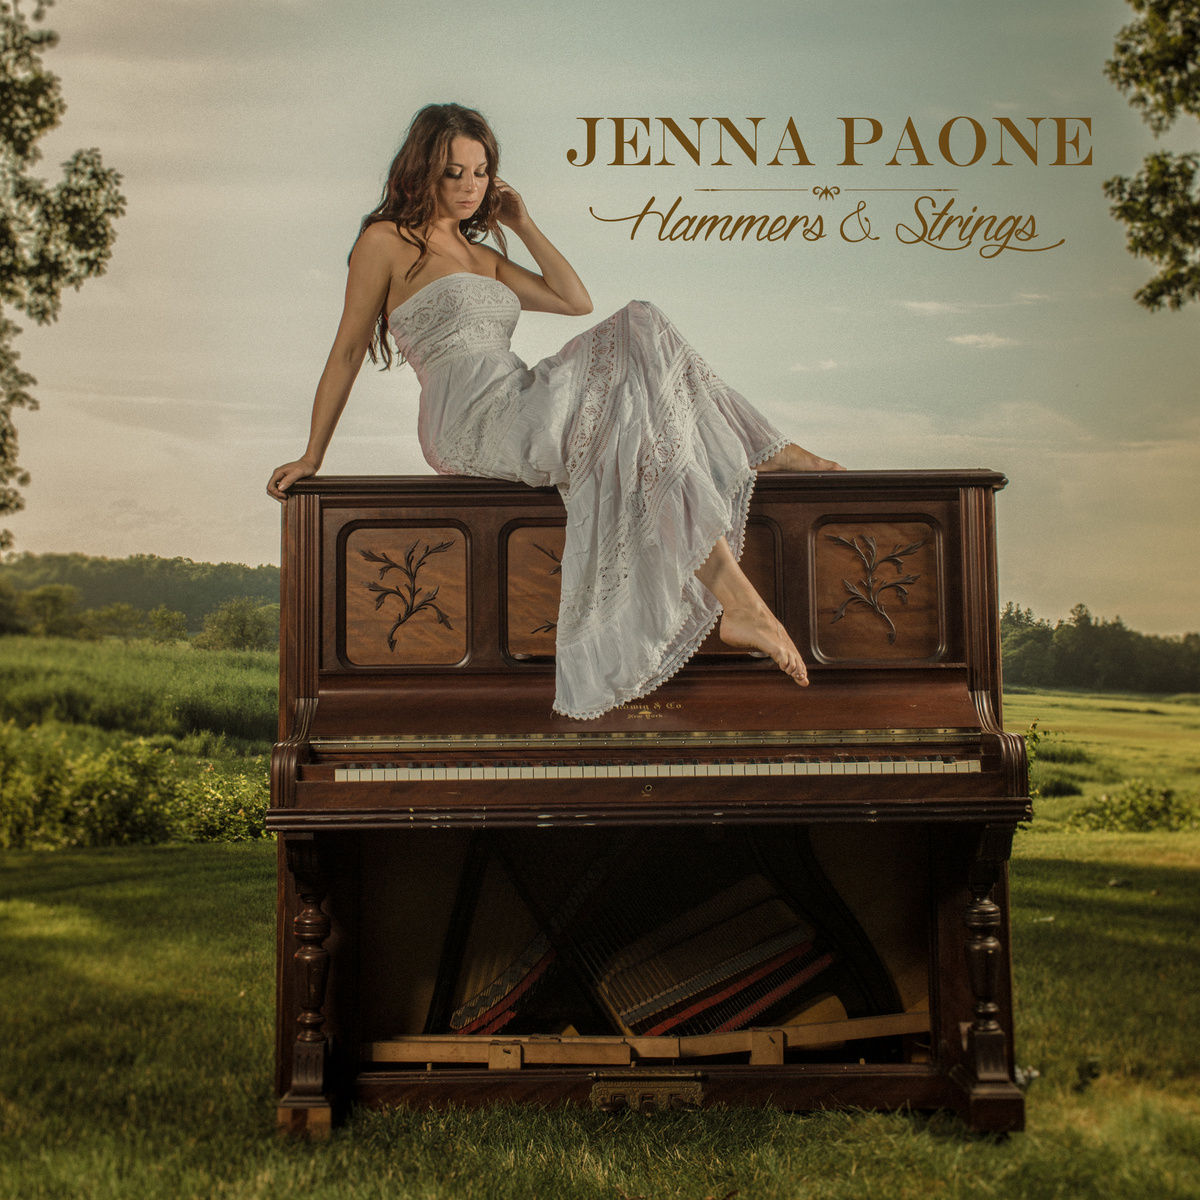 """Jenna Paone - """"Hammers & Strings""""  2014"""